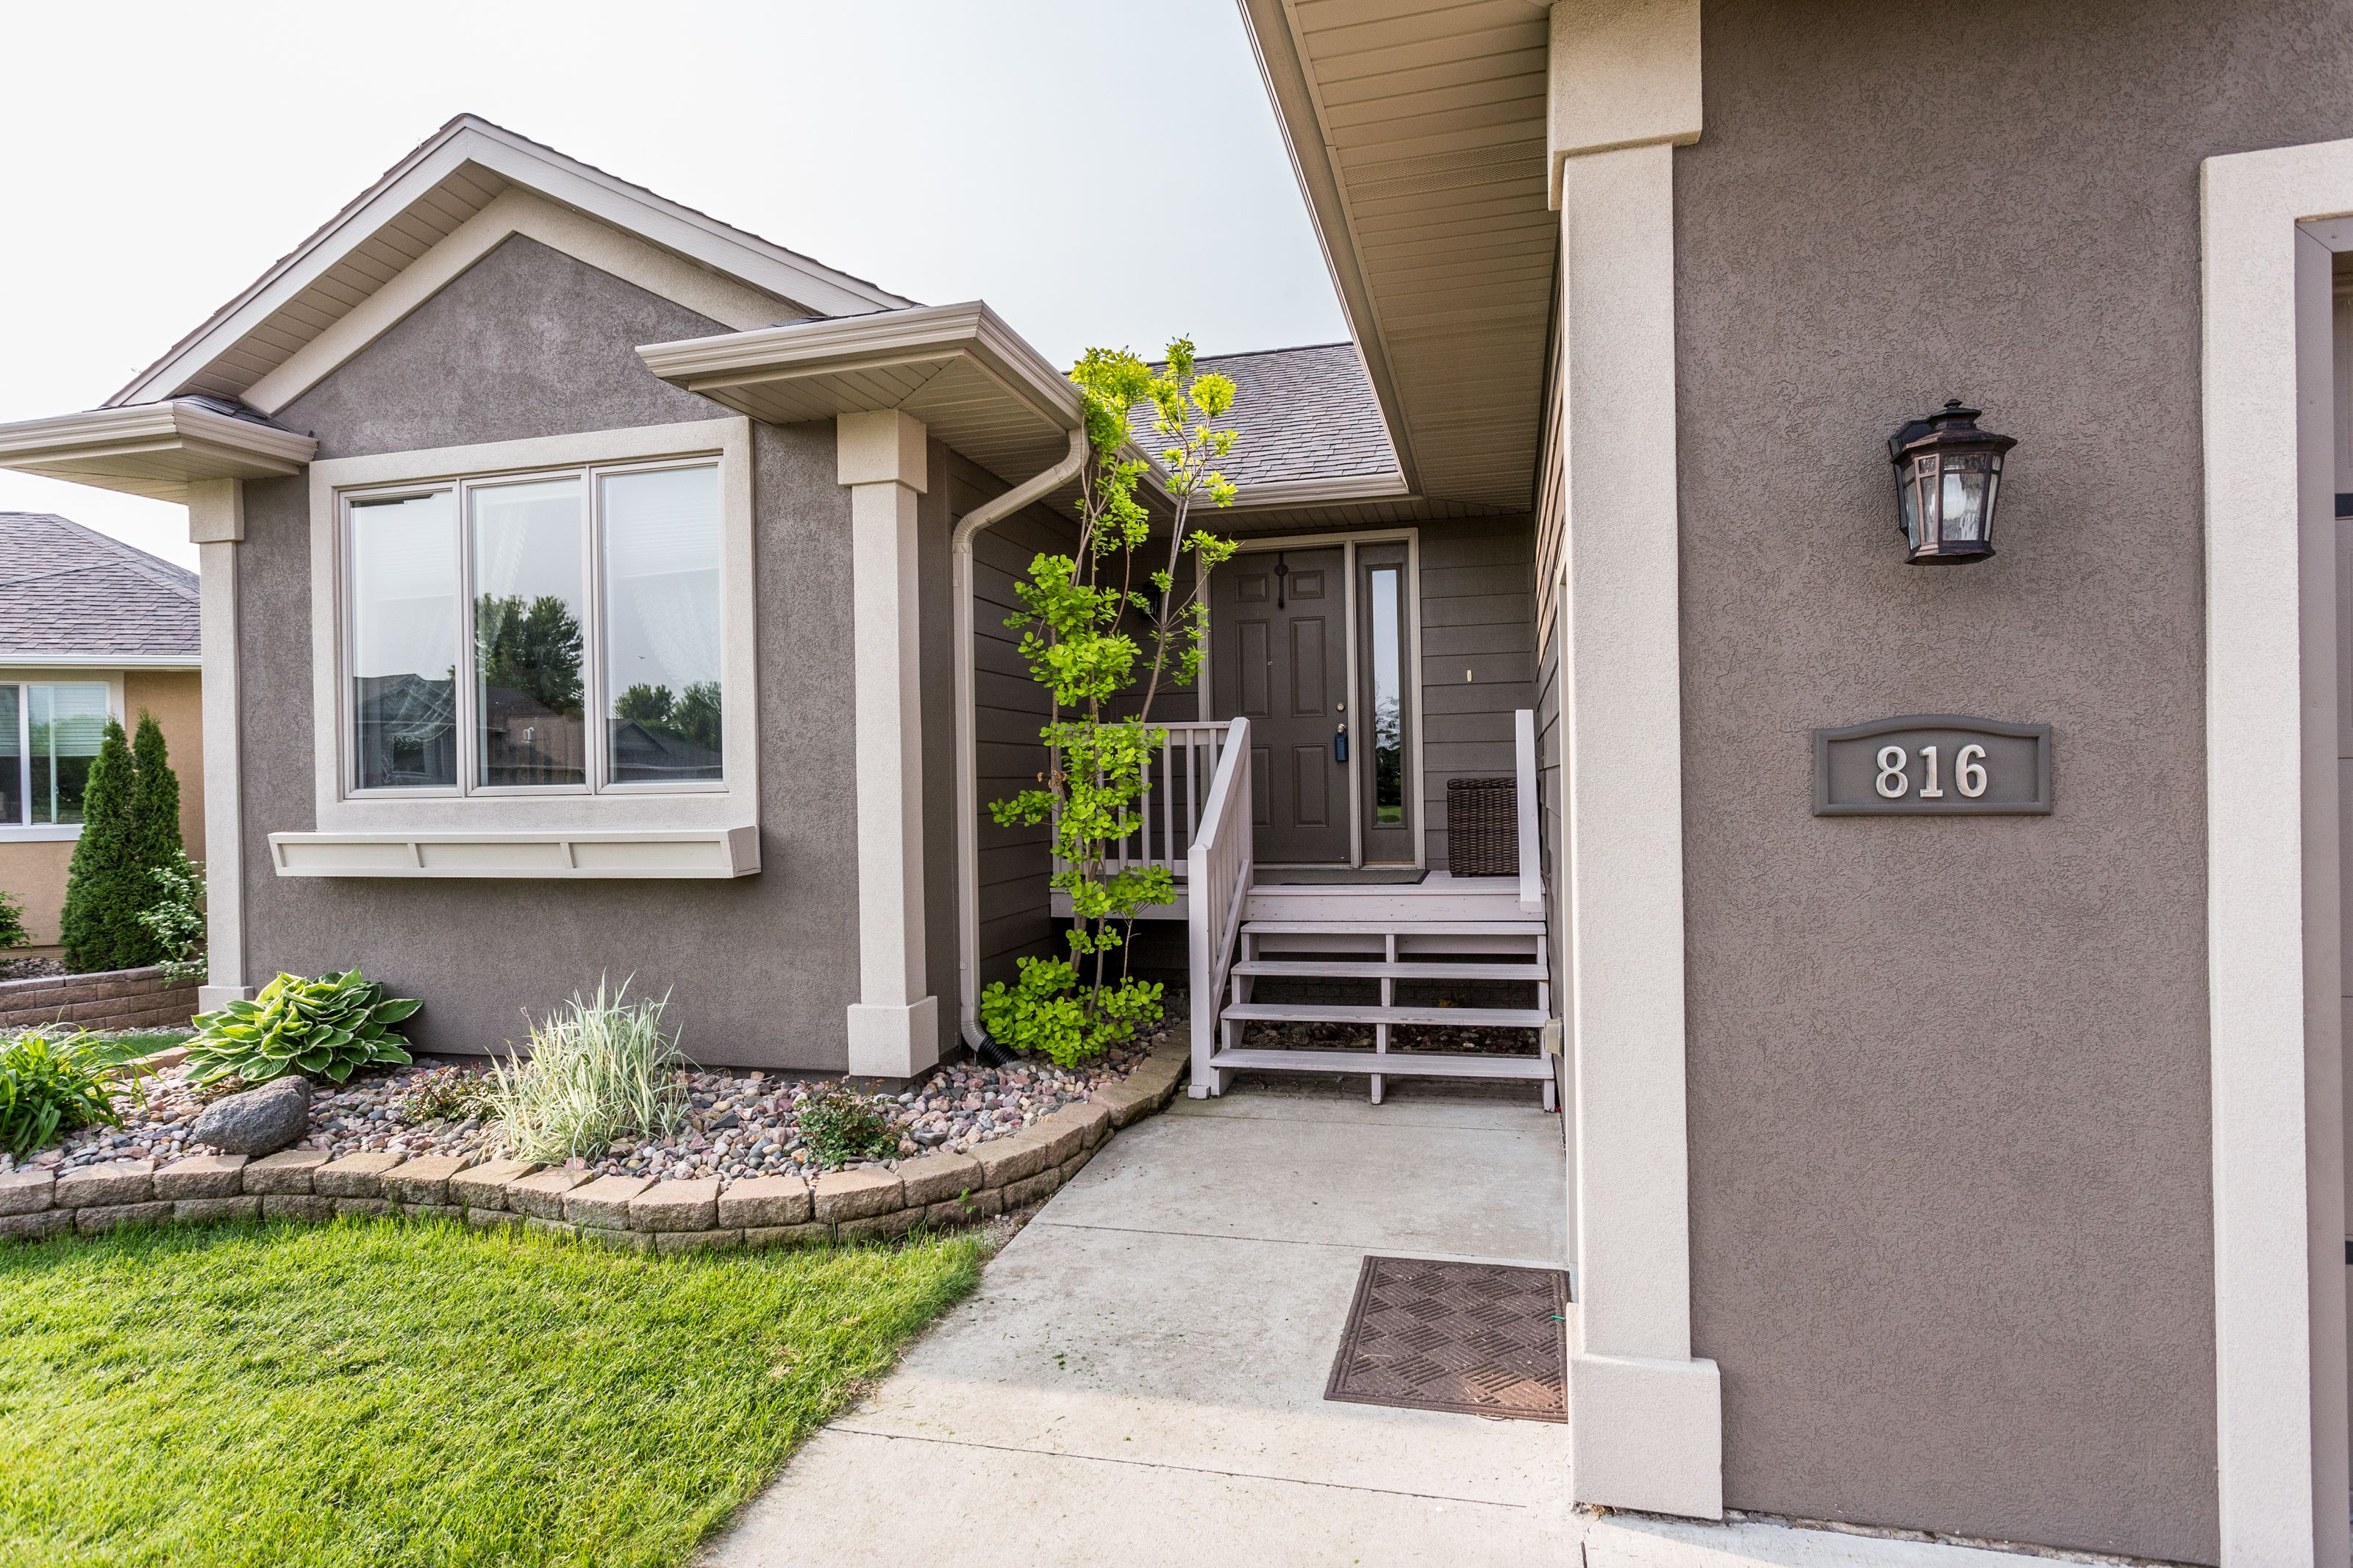 Pin on Sioux Falls Real Estate